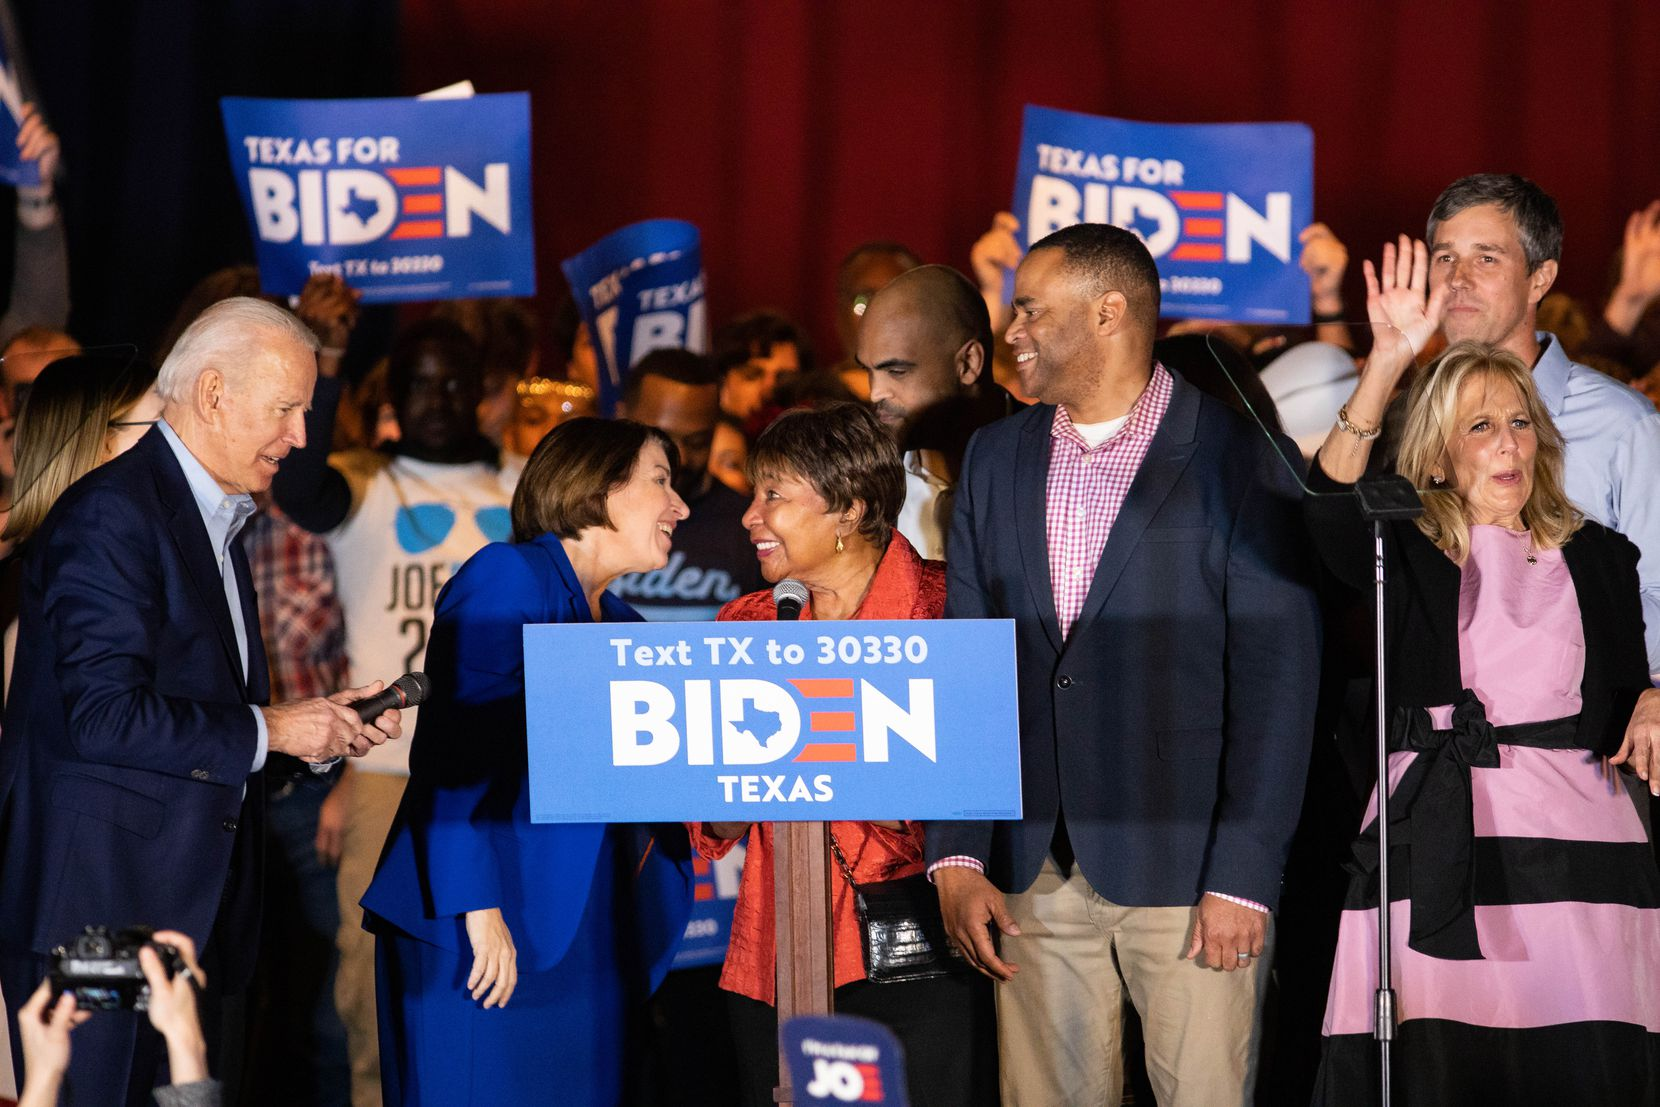 Democratic presidential primary candidate Joe Biden (far left) is endored by (from left) Sen. Amy Klobuchar (D-MN), Rep. Eddie Bernice Johnson (D-Dallas), Rep. Colin Allred (D-Dallas), Rep. Mark Veasey (D-Fort Worth), and former Rep. Beto O'Rourke during a rally held at Gilley's in Dallas on March. 2, 2020. Biden's wife Jill is at far right. (Juan Figueroa/ The Dallas Morning News)